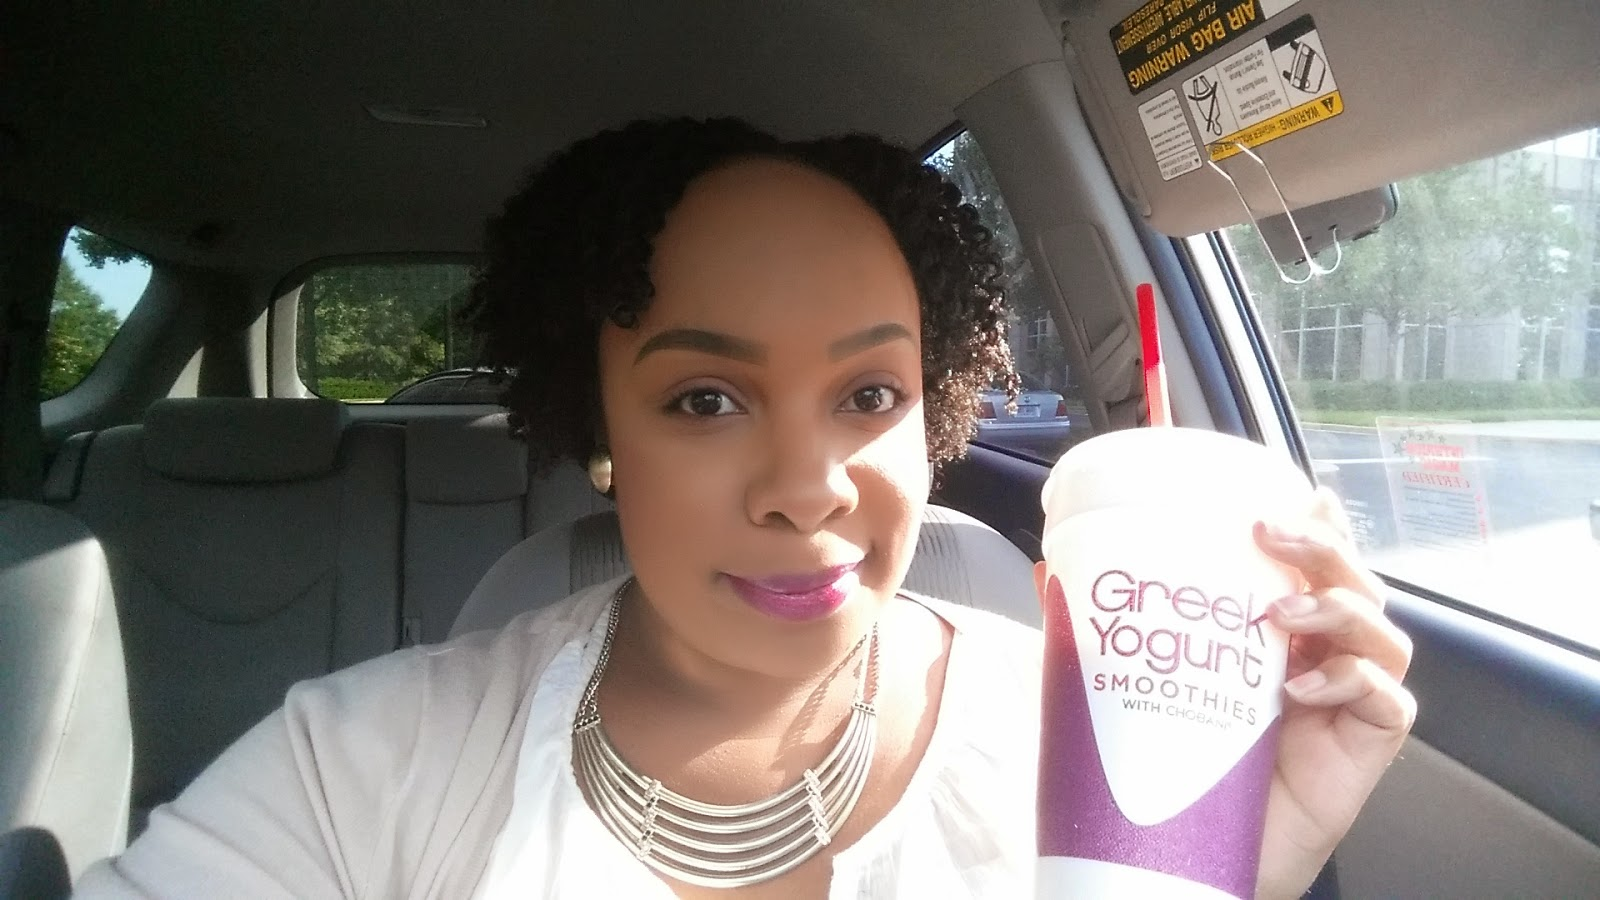 Smoothie King's Chobani Greek Yogurt Smoothie Review #FindMyBalance #SmoothieKing #AD via ProductReviewMom.com